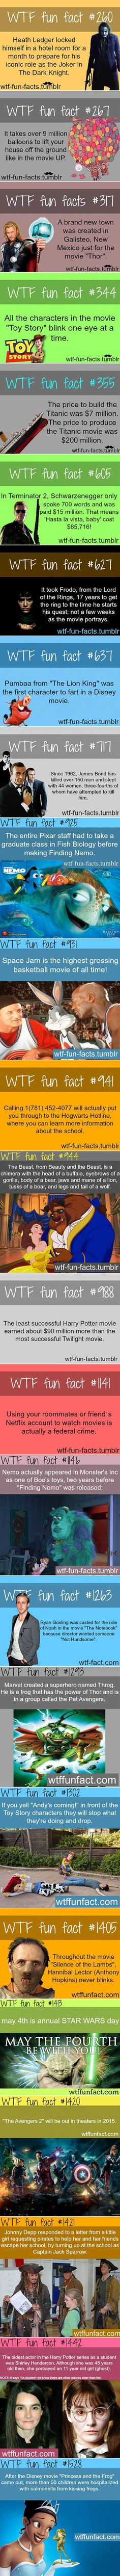 Here are some fun and random tv, movie, comic book facts that might surprise you (though the grammar in some make me squirm).: